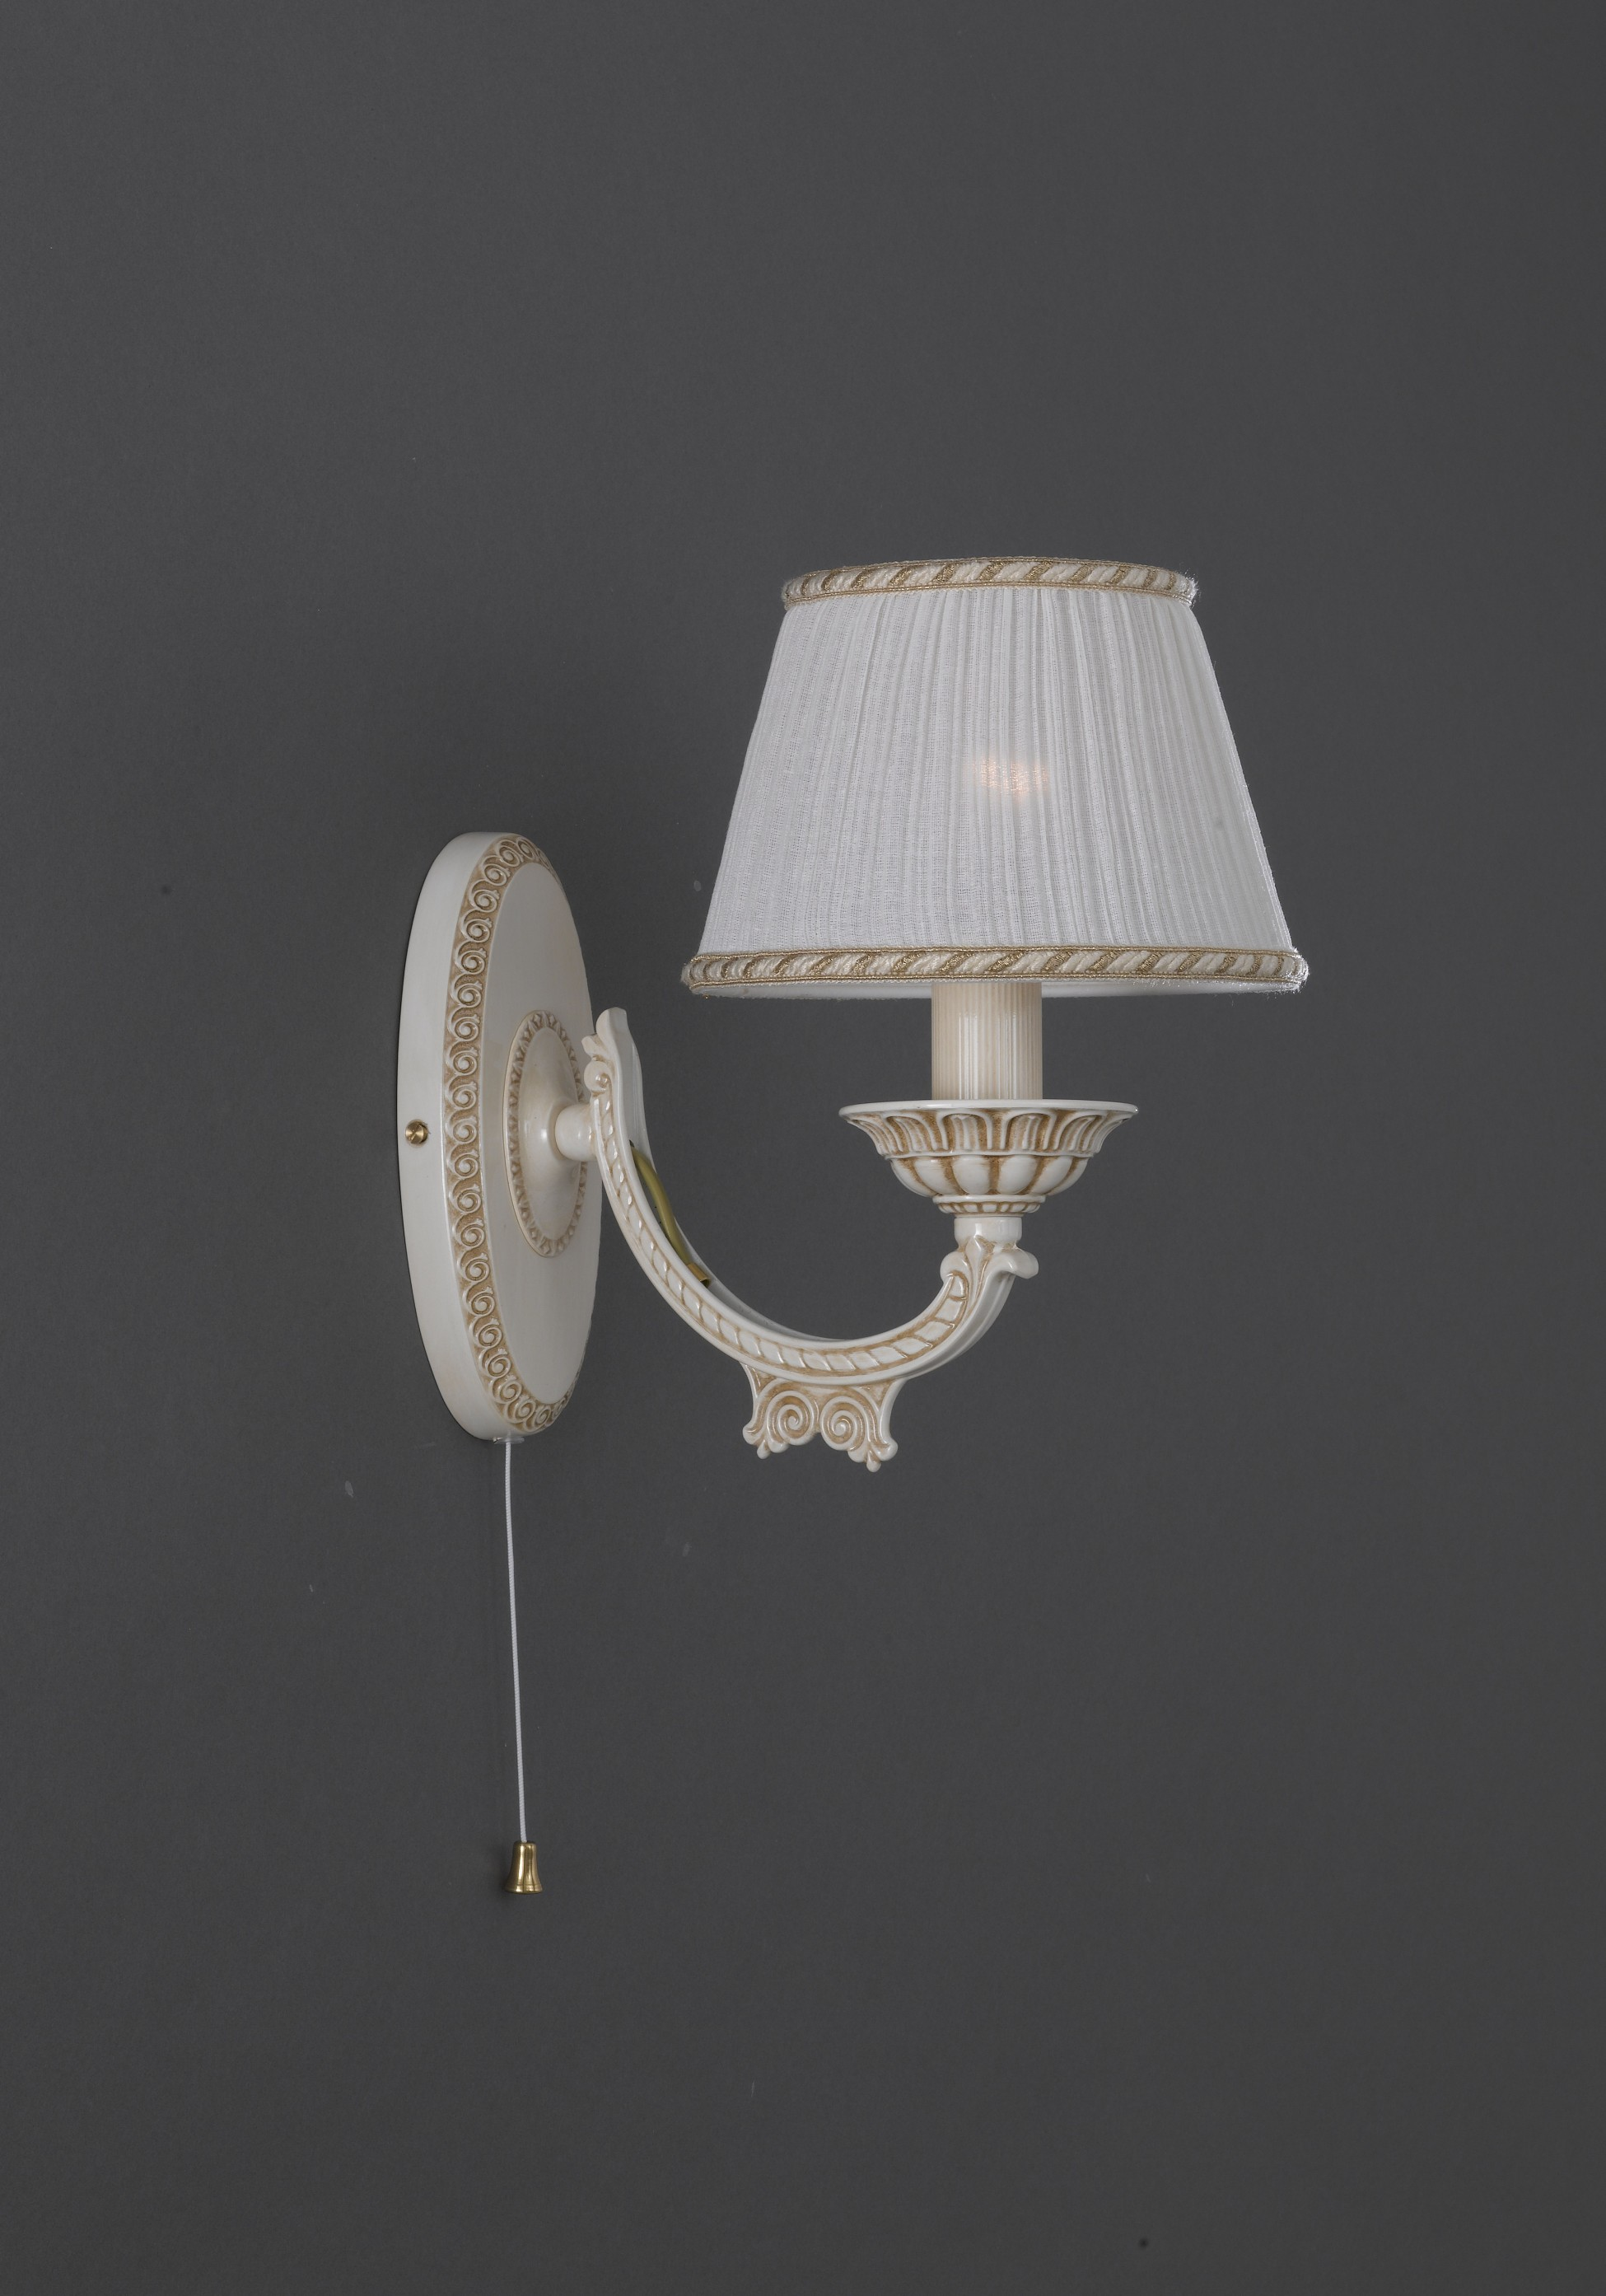 1 light old white brass wall sconce with lamp shades Reccagni Store